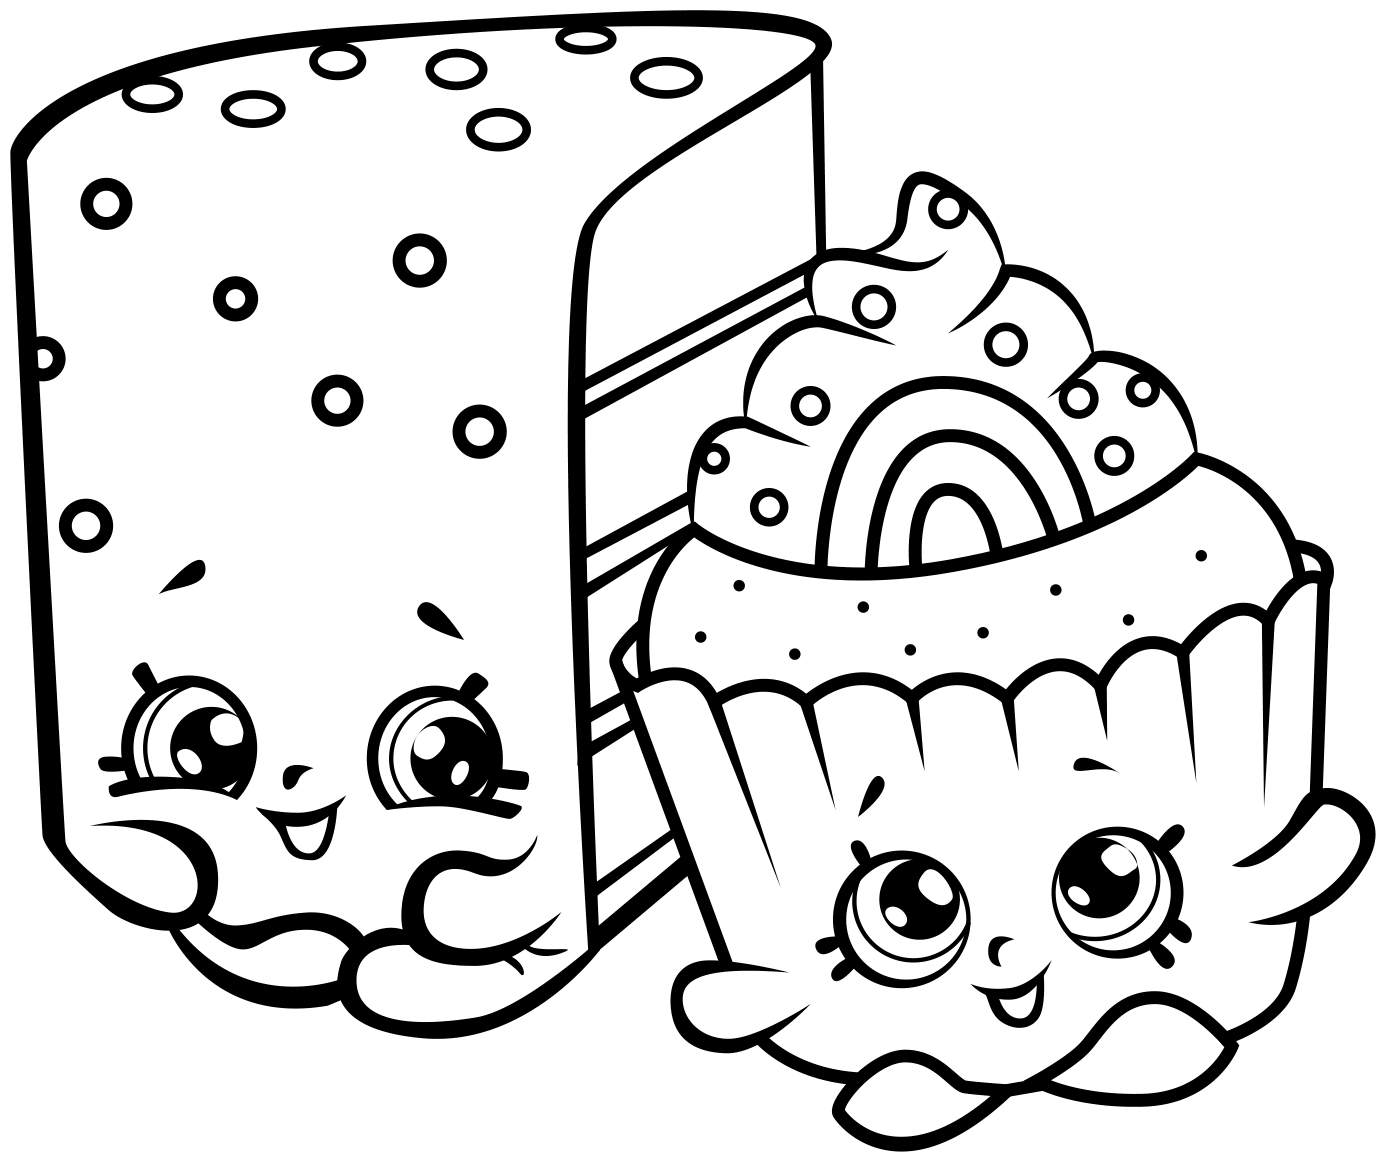 1386x1162 Unique Coloring Pages For Kids Shopkins Gallery Free Coloring Pages